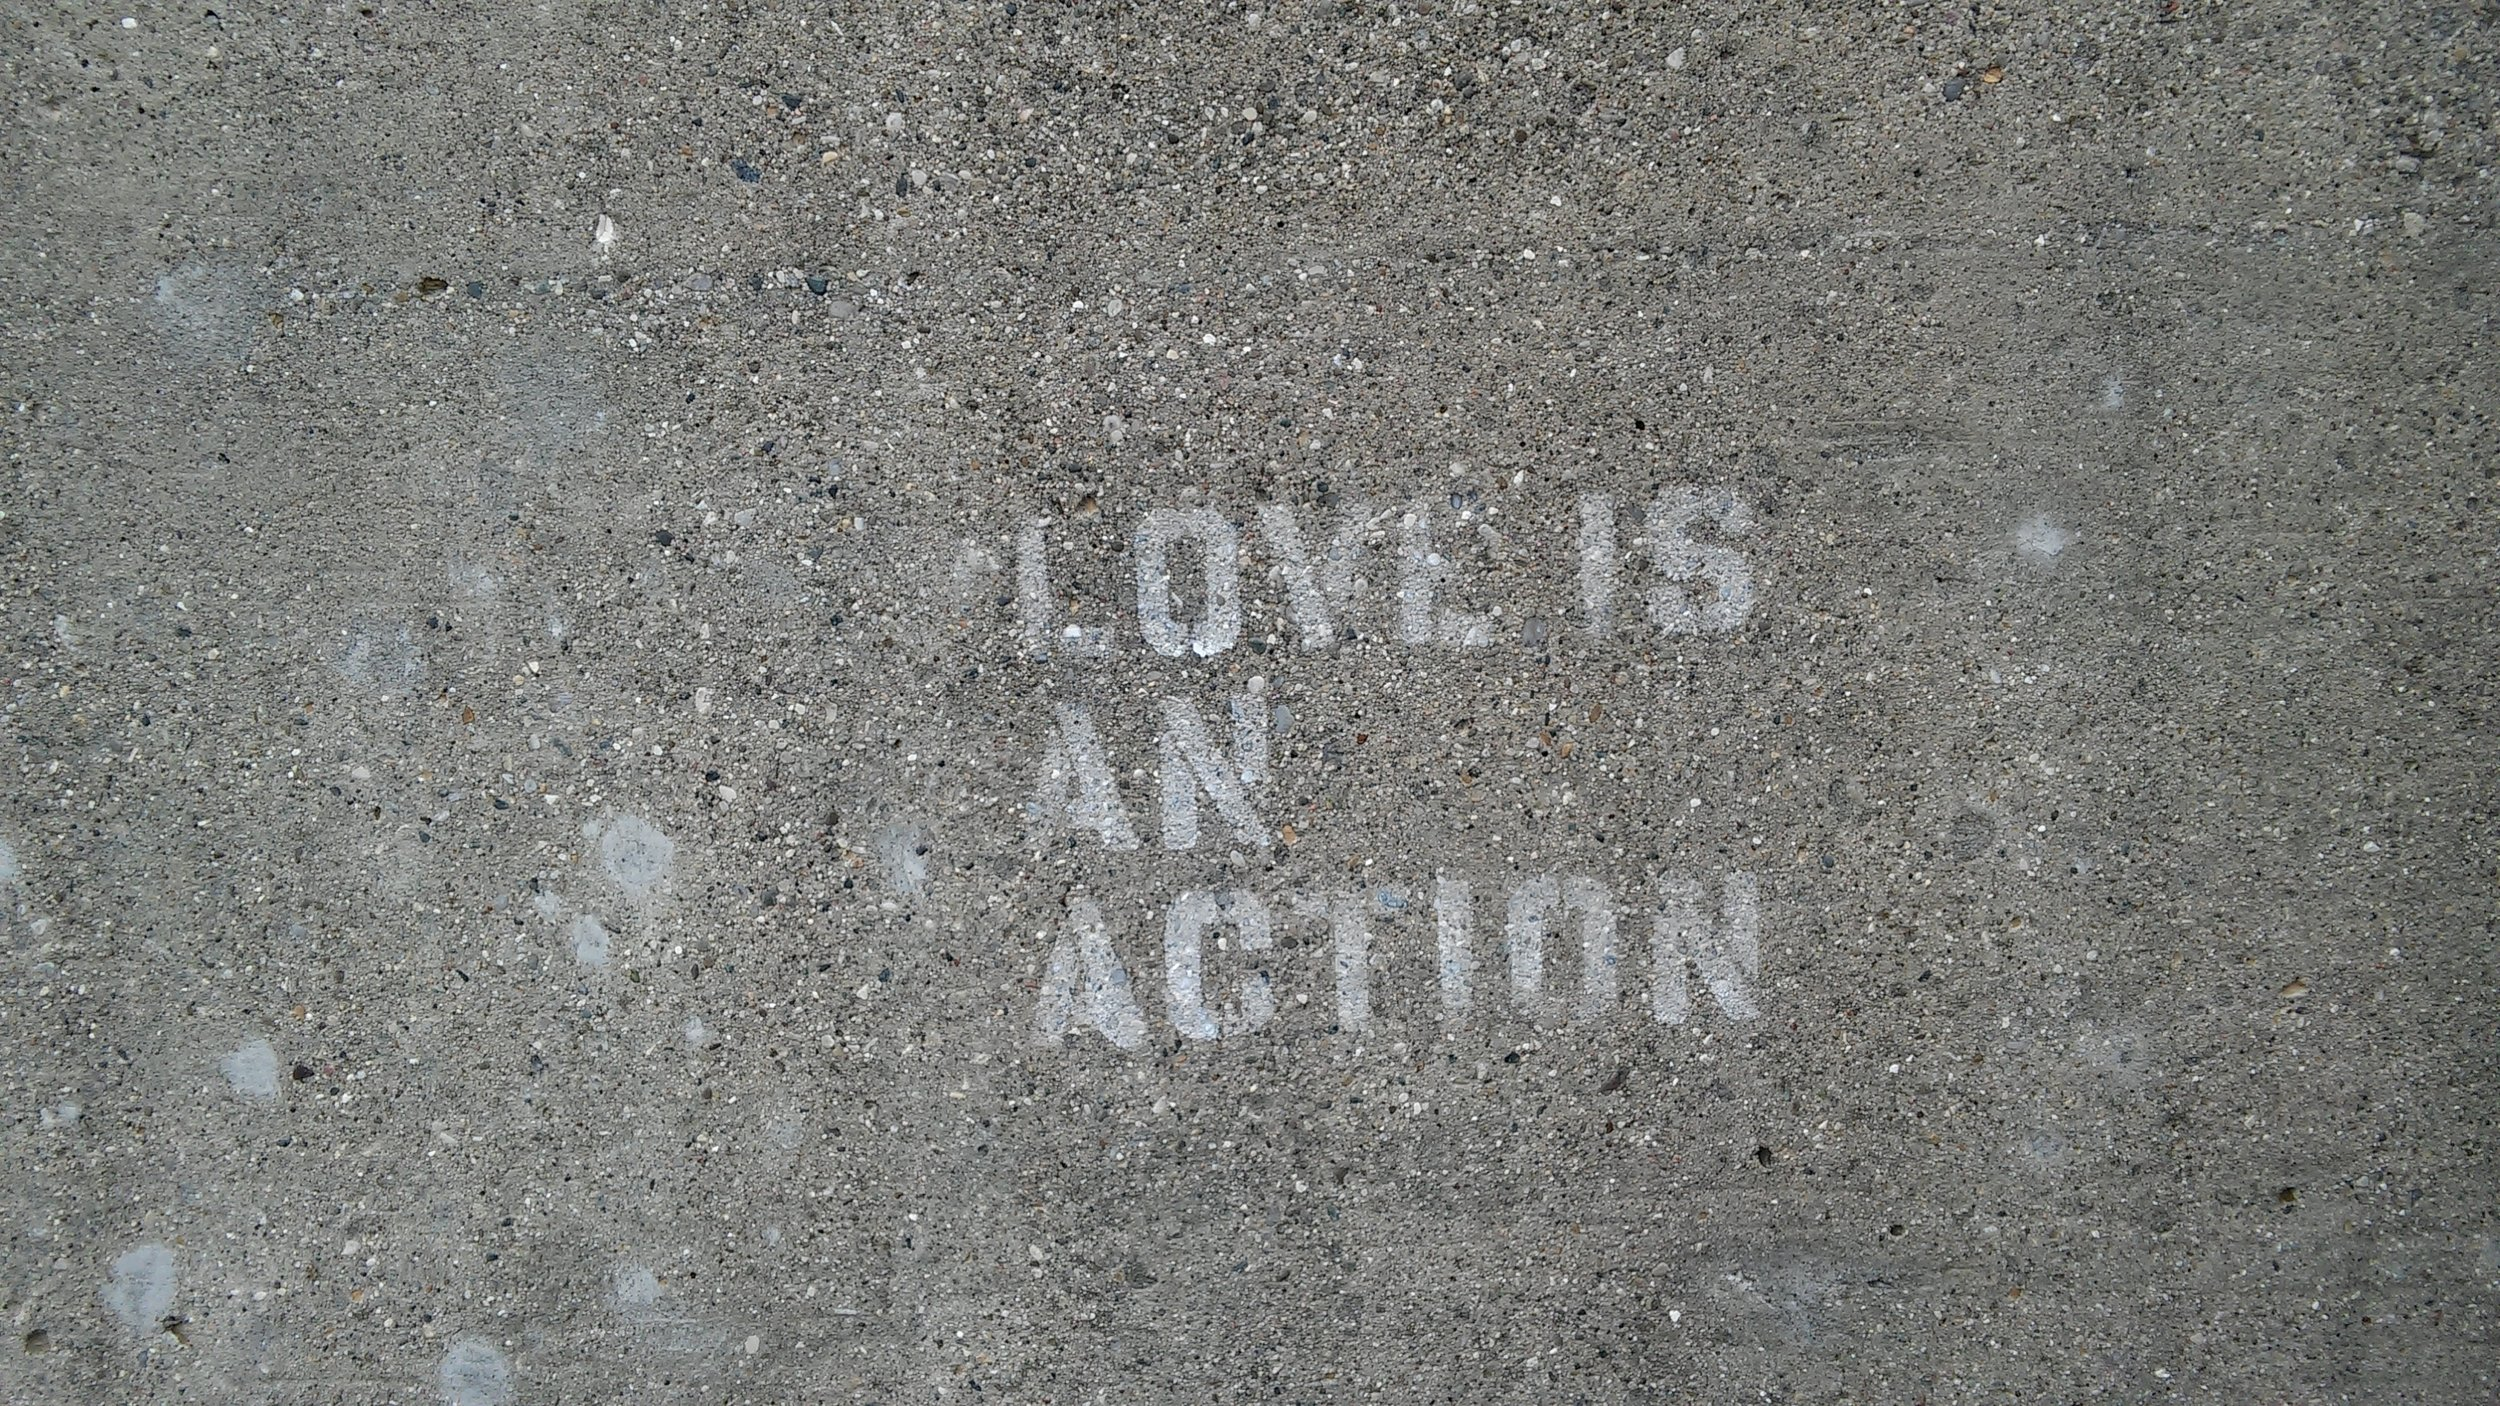 Found this stenciled on the wall outside Porter Hall on Campus a few months back.